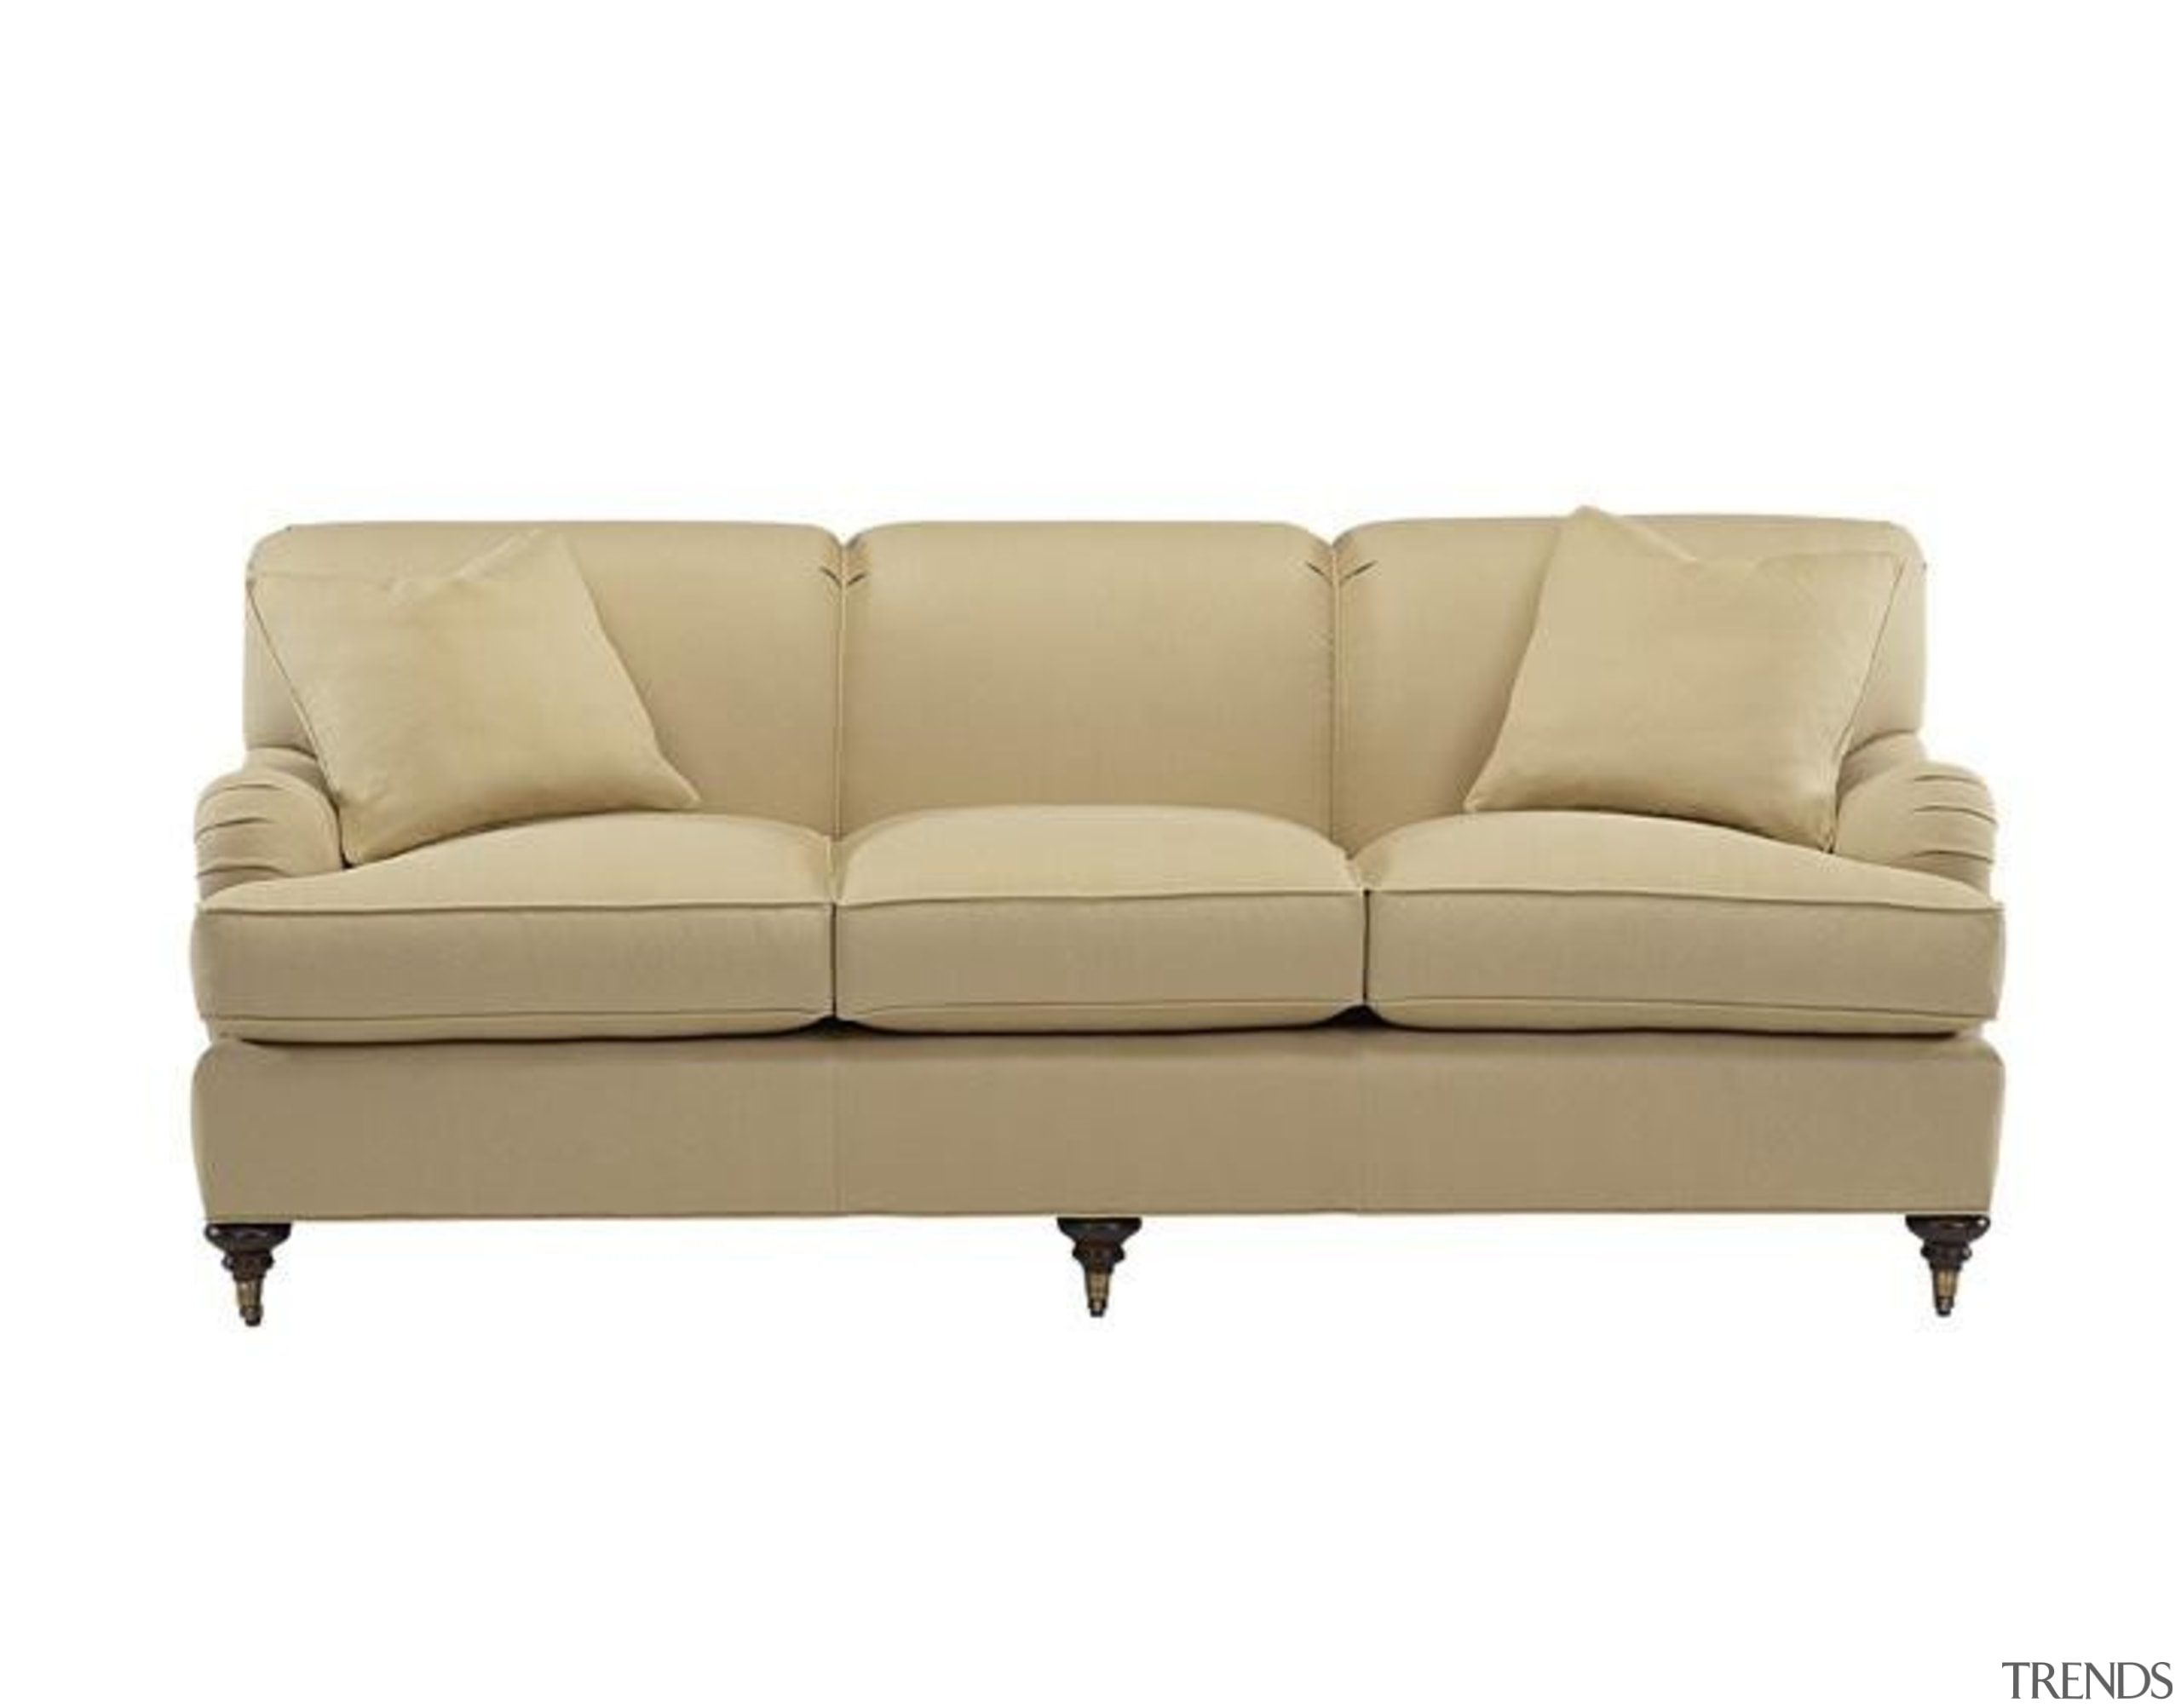 Designed to provide Baker style at unprecedented value, angle, couch, furniture, loveseat, outdoor furniture, outdoor sofa, product design, sofa bed, white, orange